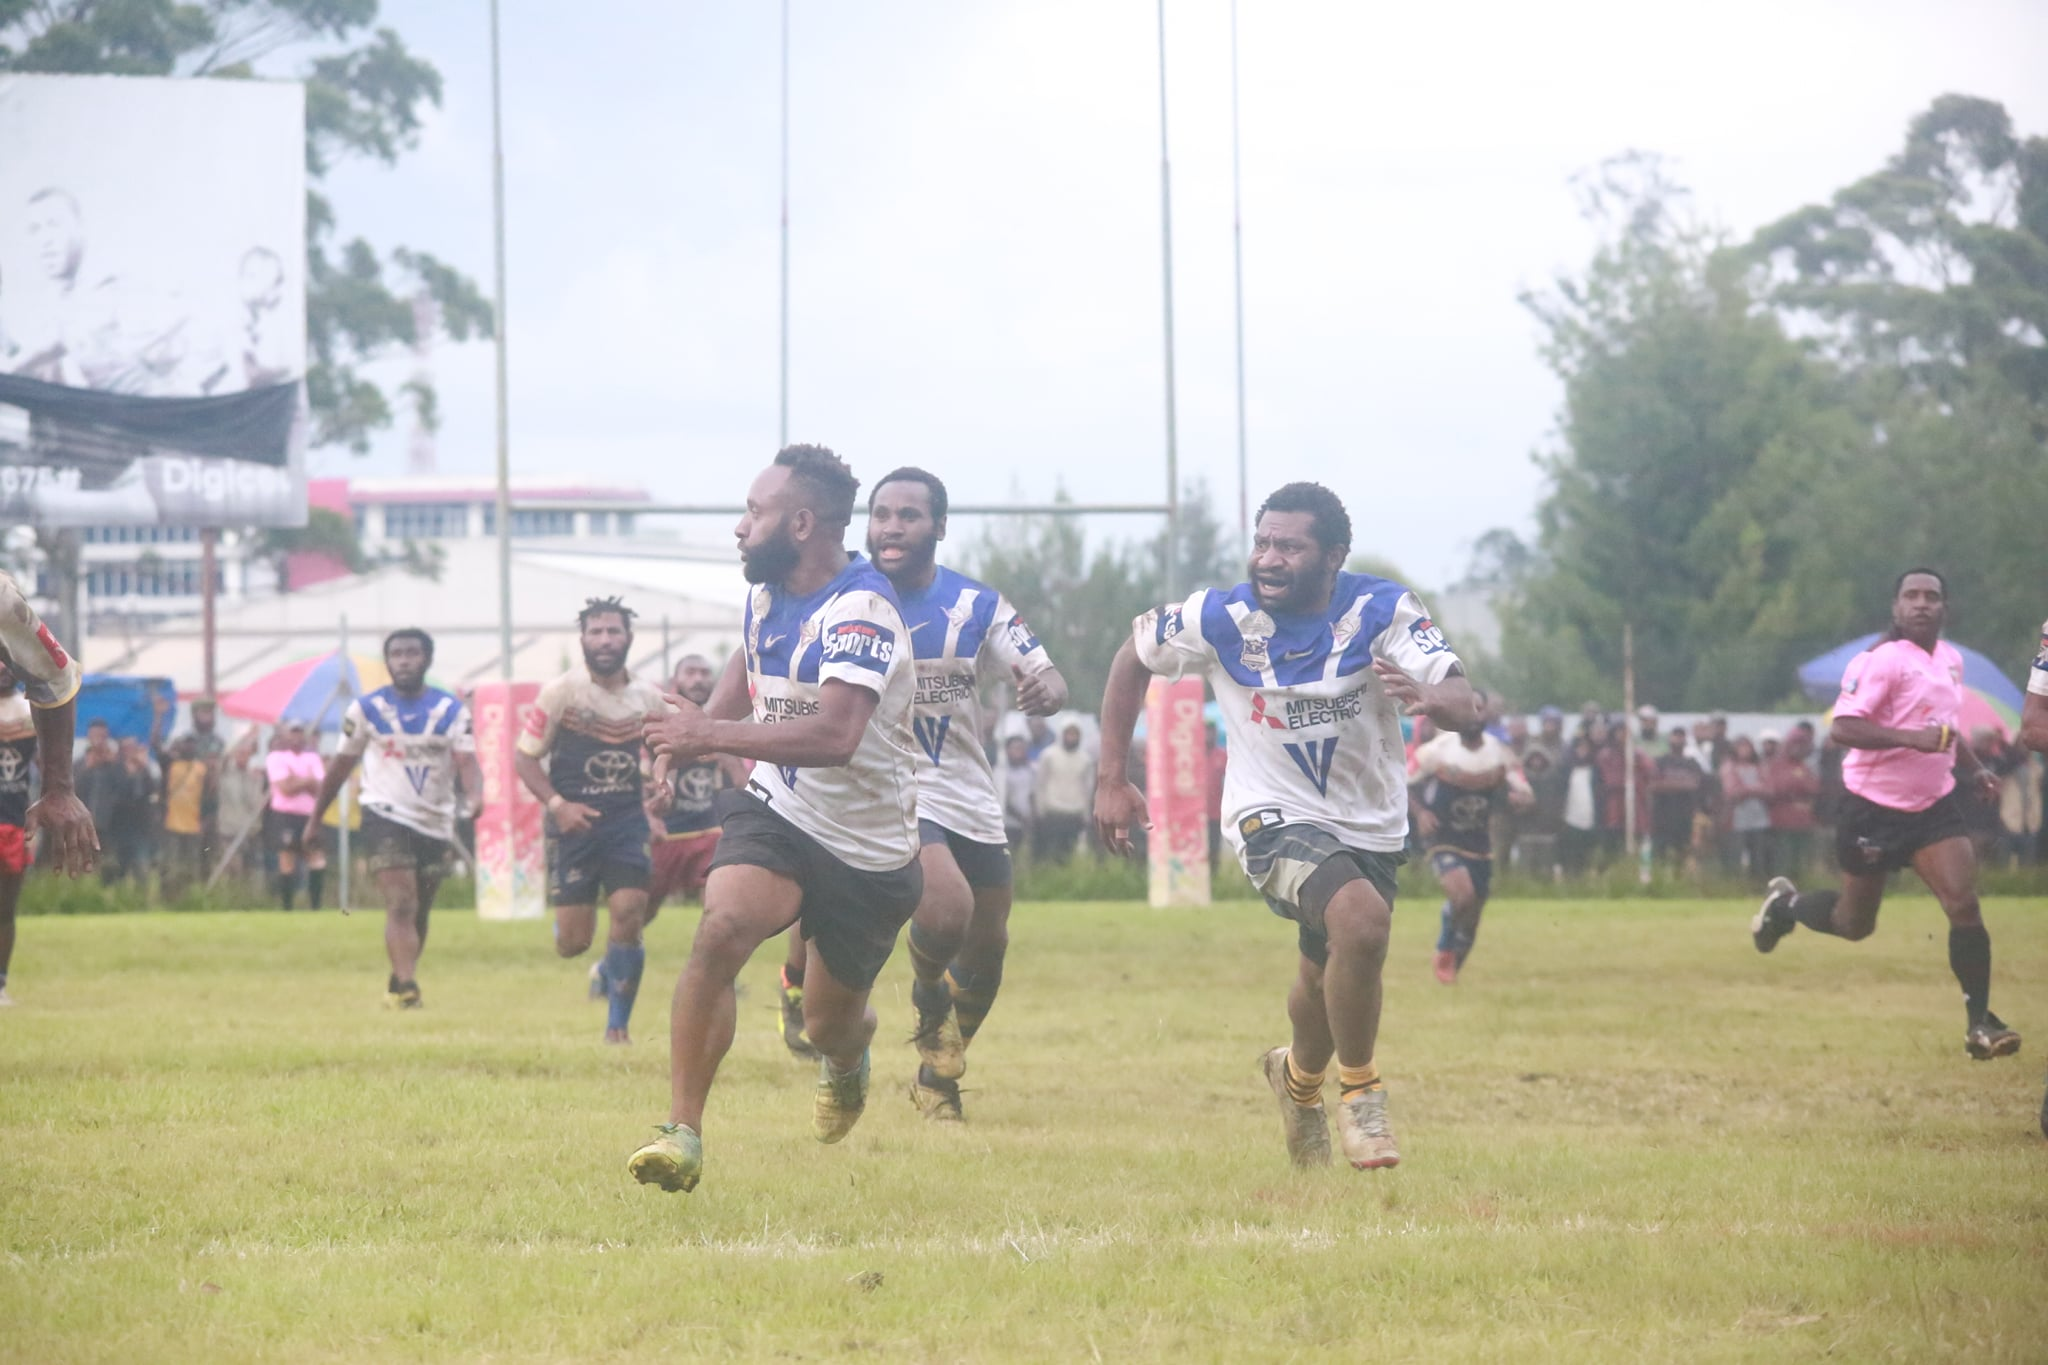 Uguni Zone Grand Finals set to take place this weekend